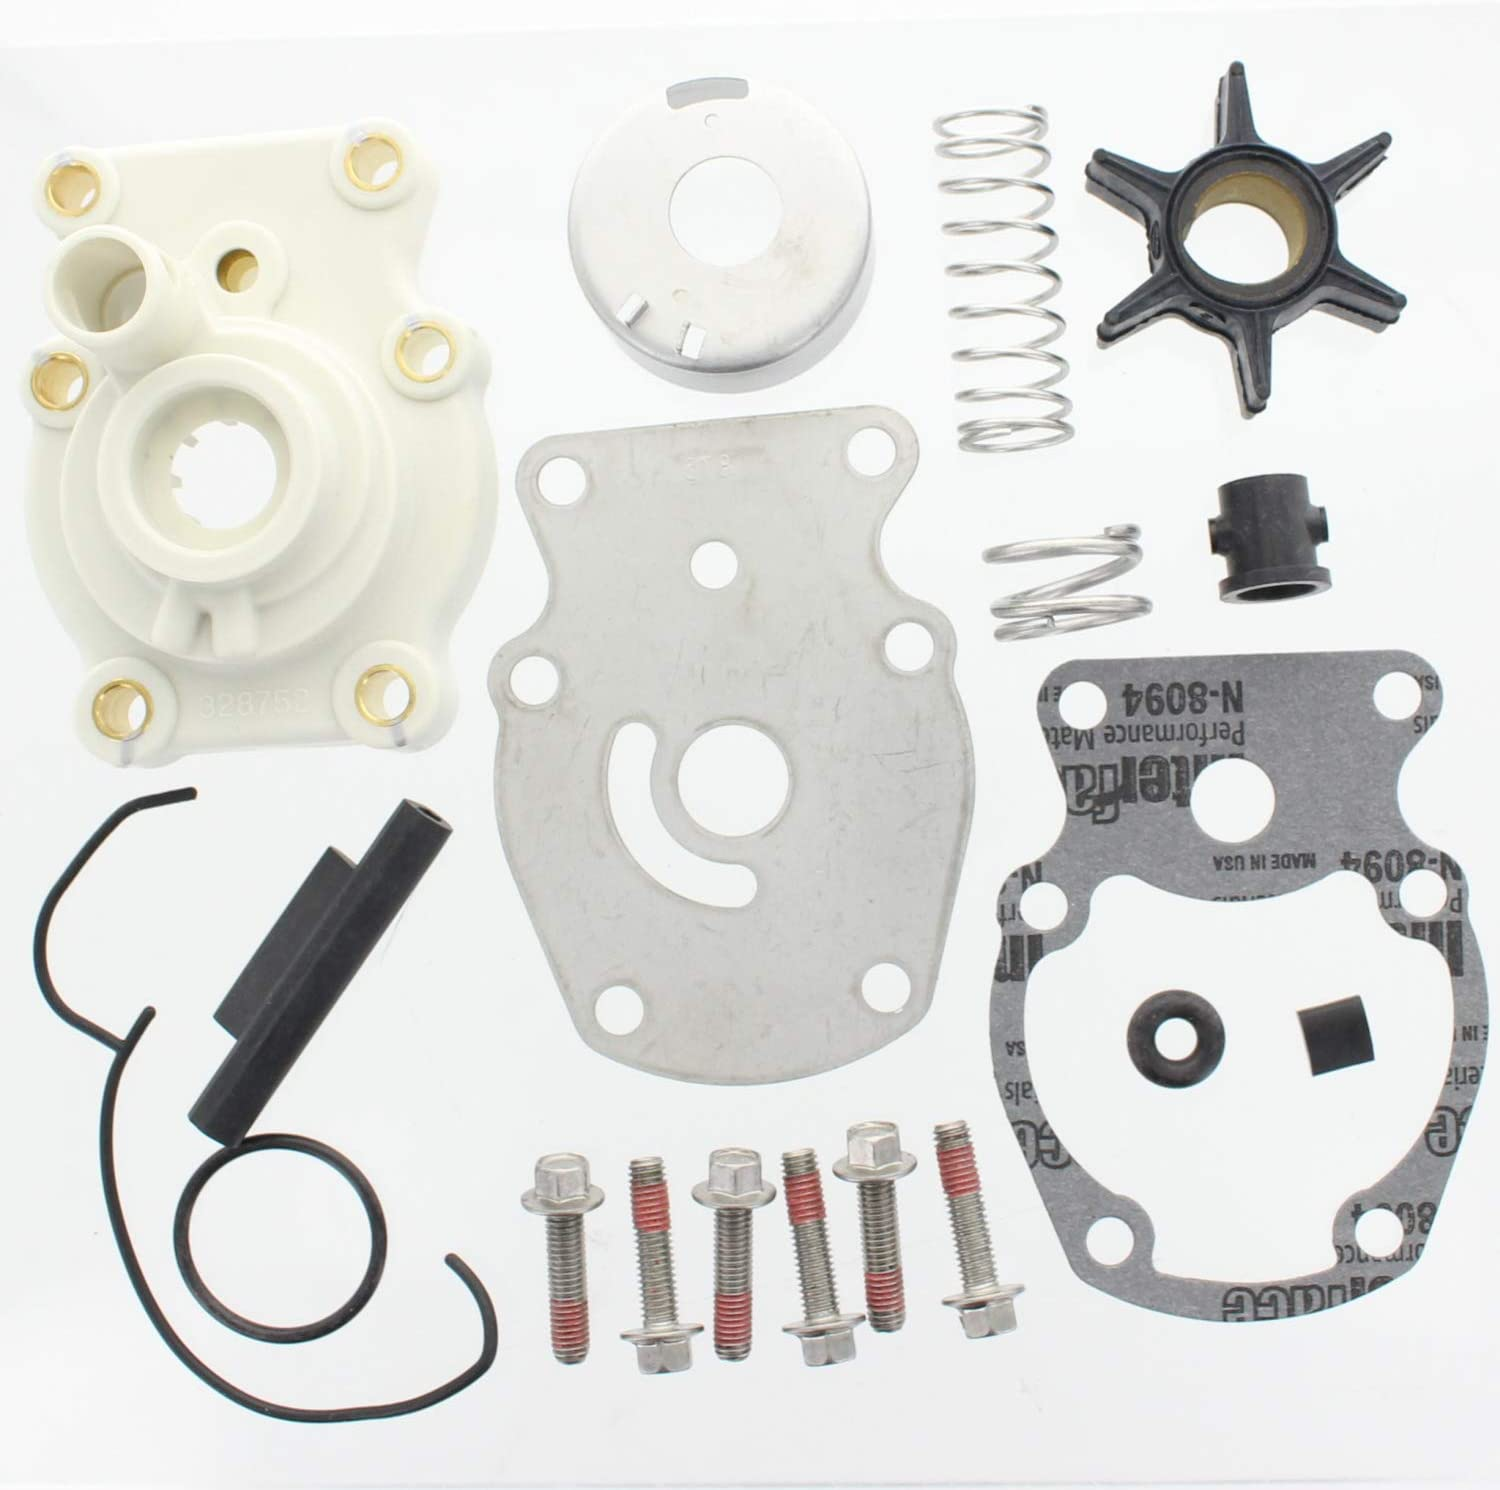 OEM BRP OMC Johnson Evinrude Outboard Water Pump Kit 5008972